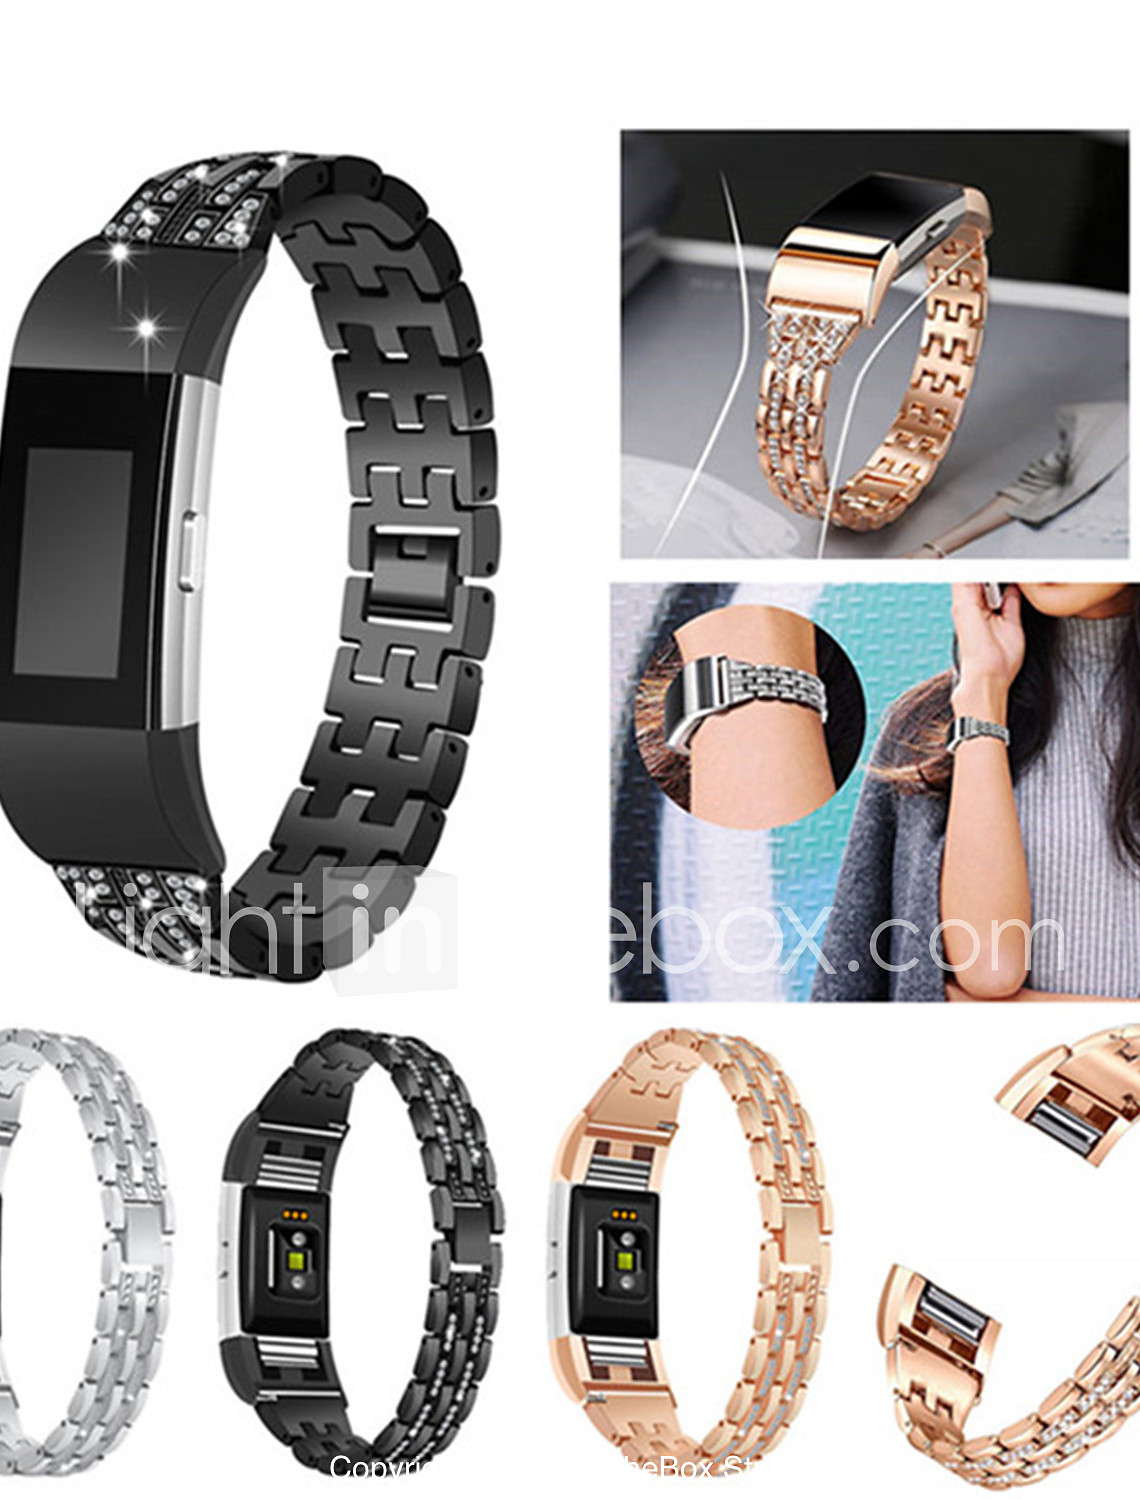 STAINLESS STEEL RHINESTONE WATCHBAND WRIST STRAP FOR FITBIT CHARGE 2 FUNNY